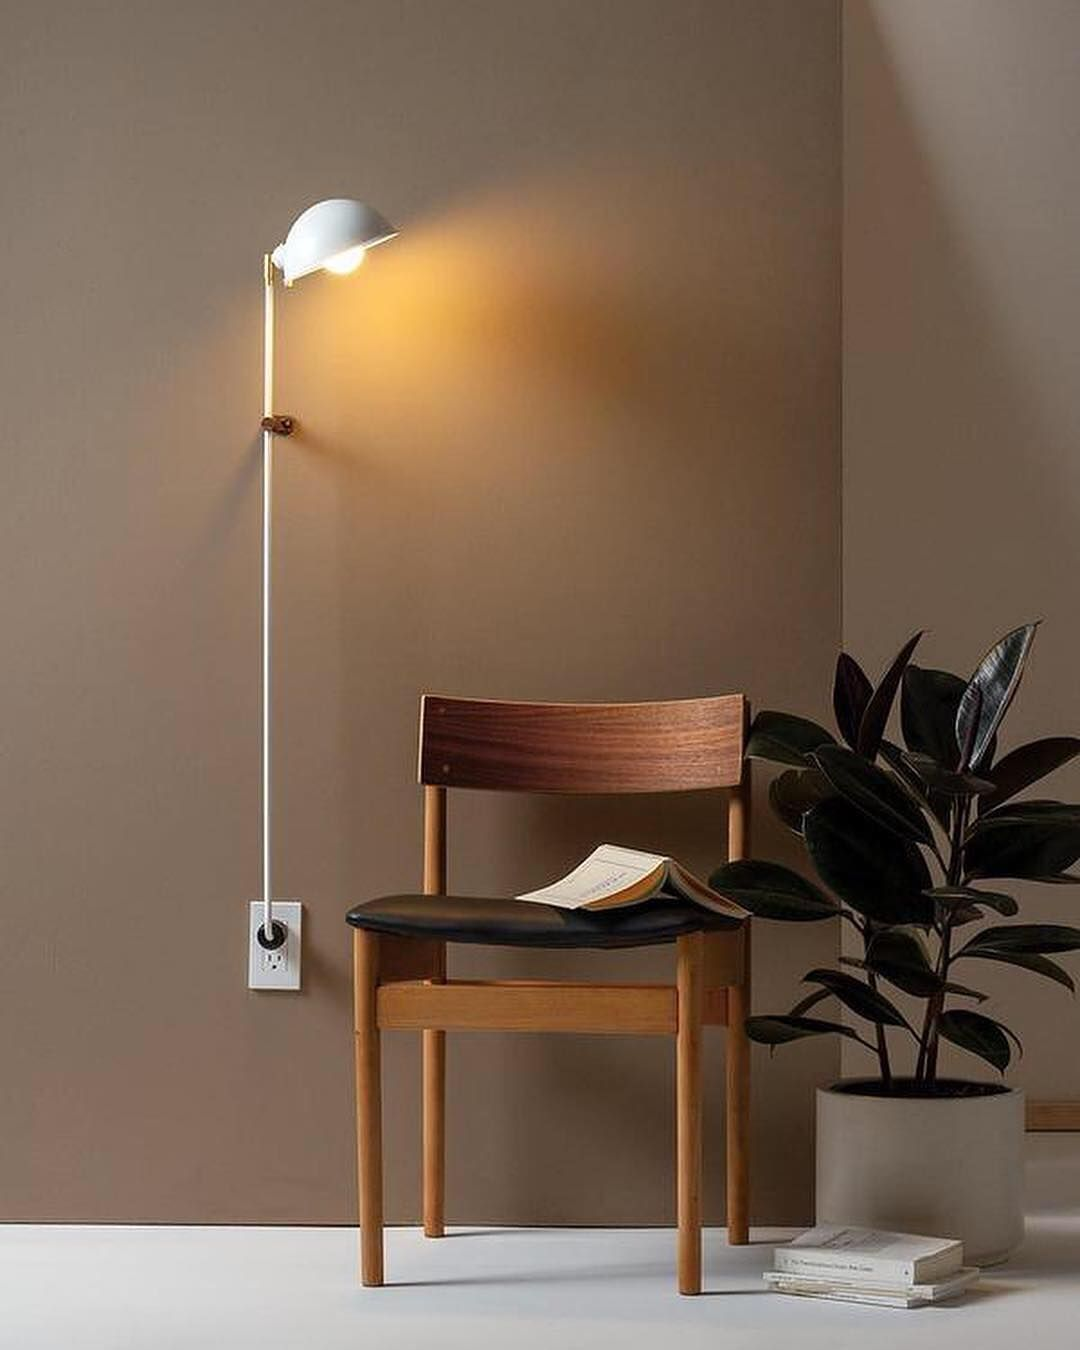 Humanhome On Instagram Olle Plug Lamp Purpose Driven Function Focused Architectural Lighting Made In Los Angeles Lamps Living Room Interior Lamp #plug #in #lighting #for #living #room